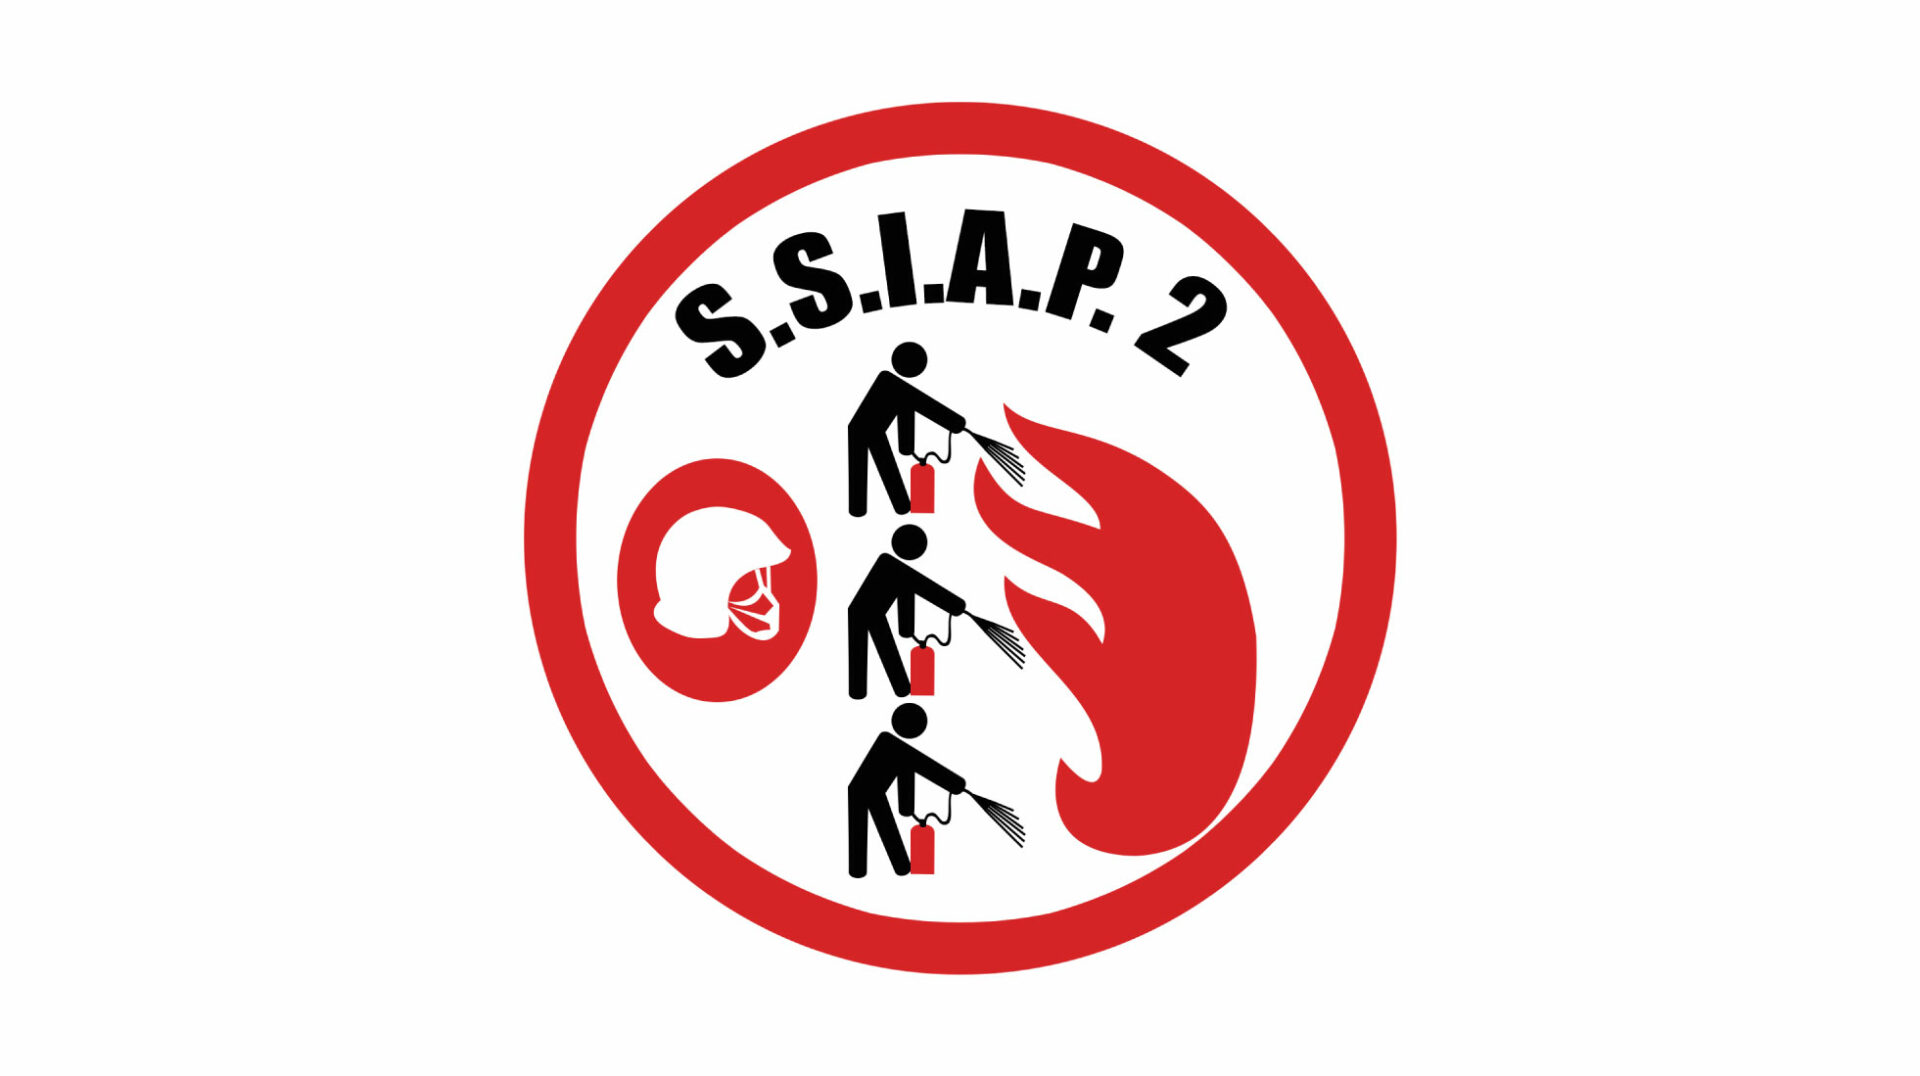 formation ssiap 2